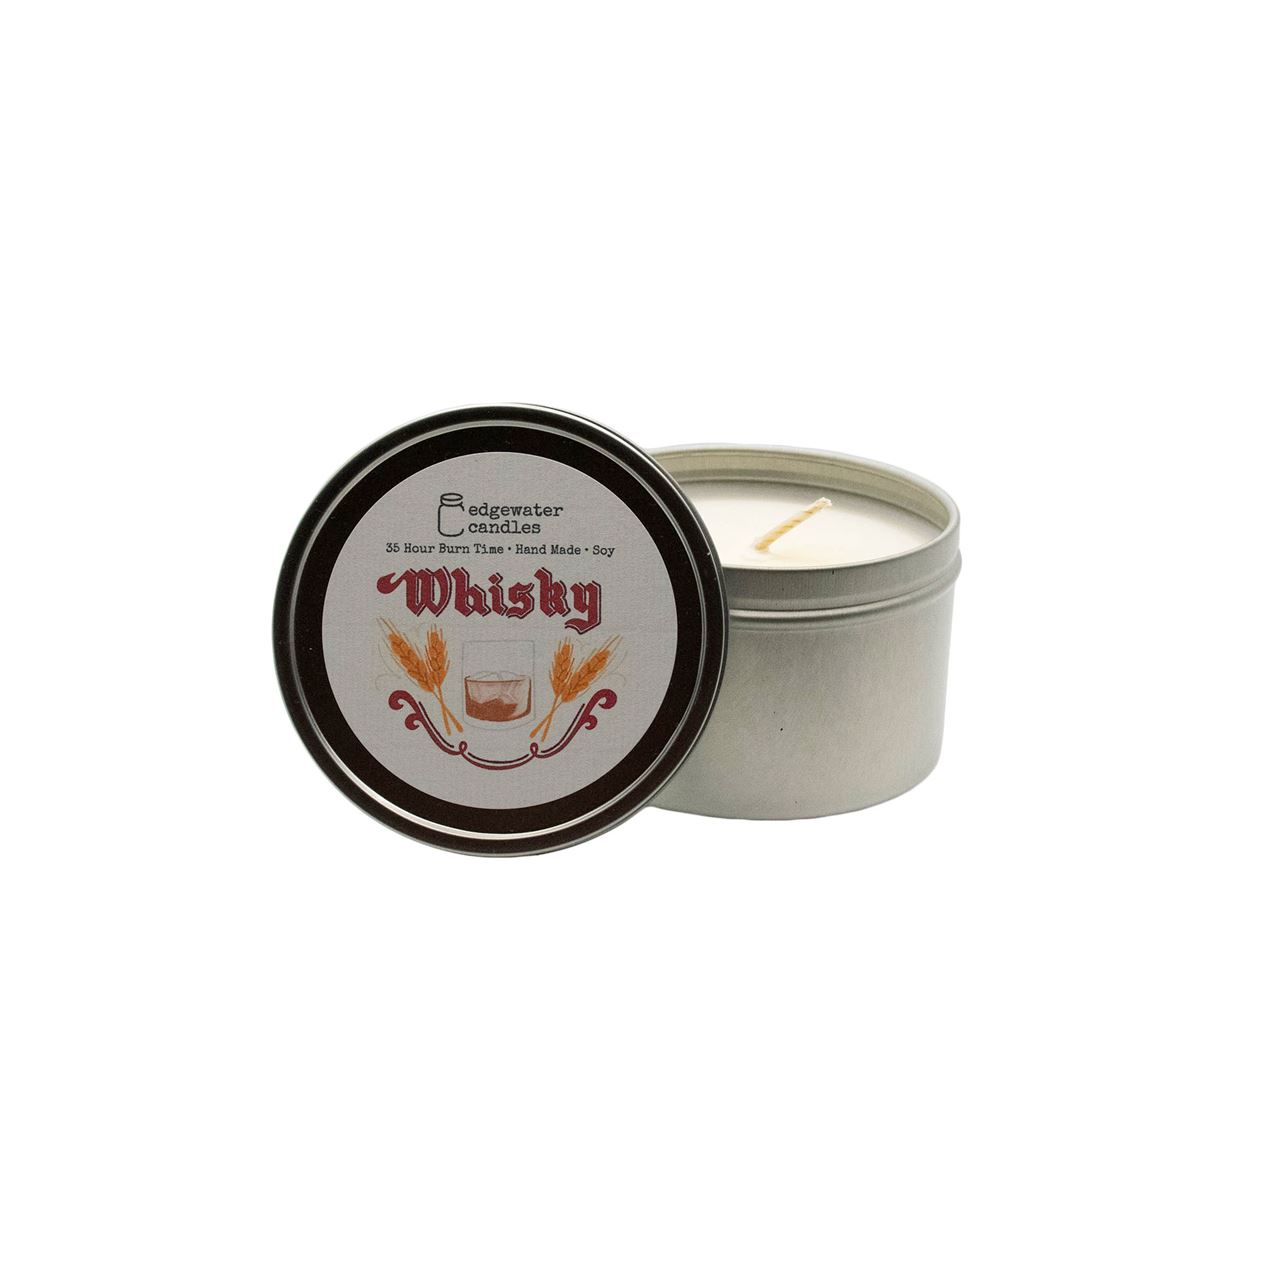 Whisky Travel Tin by Edgewater Candles